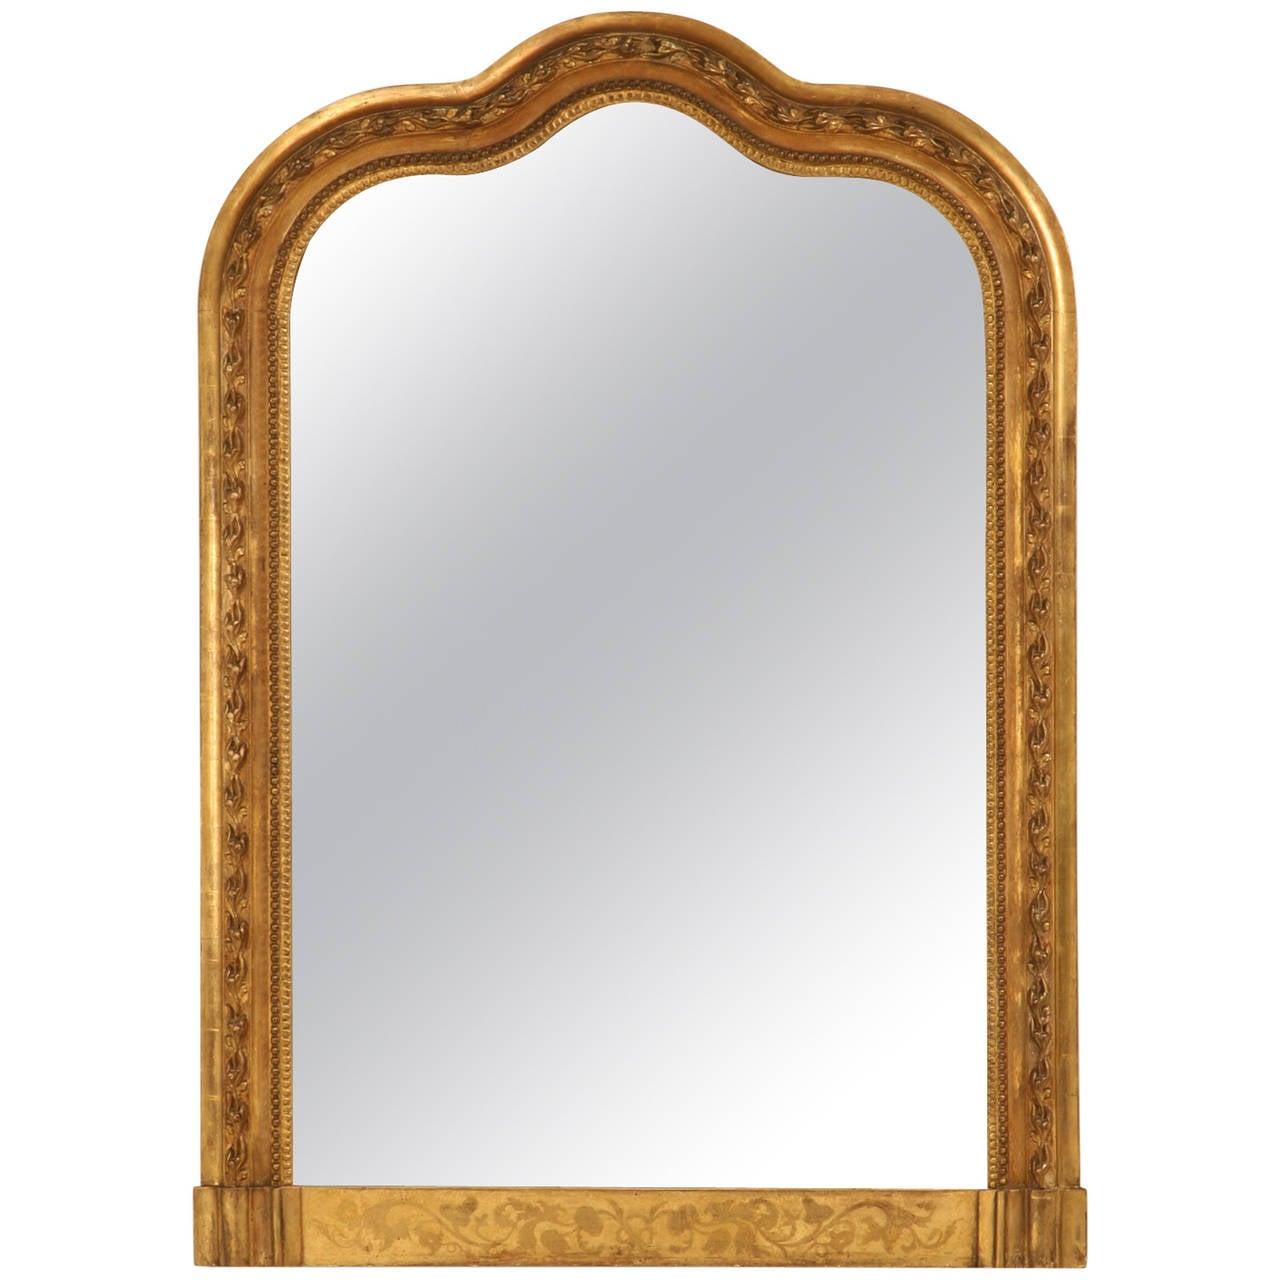 Antique french gilded mirror circa 1800s for sale at 1stdibs for French mirror